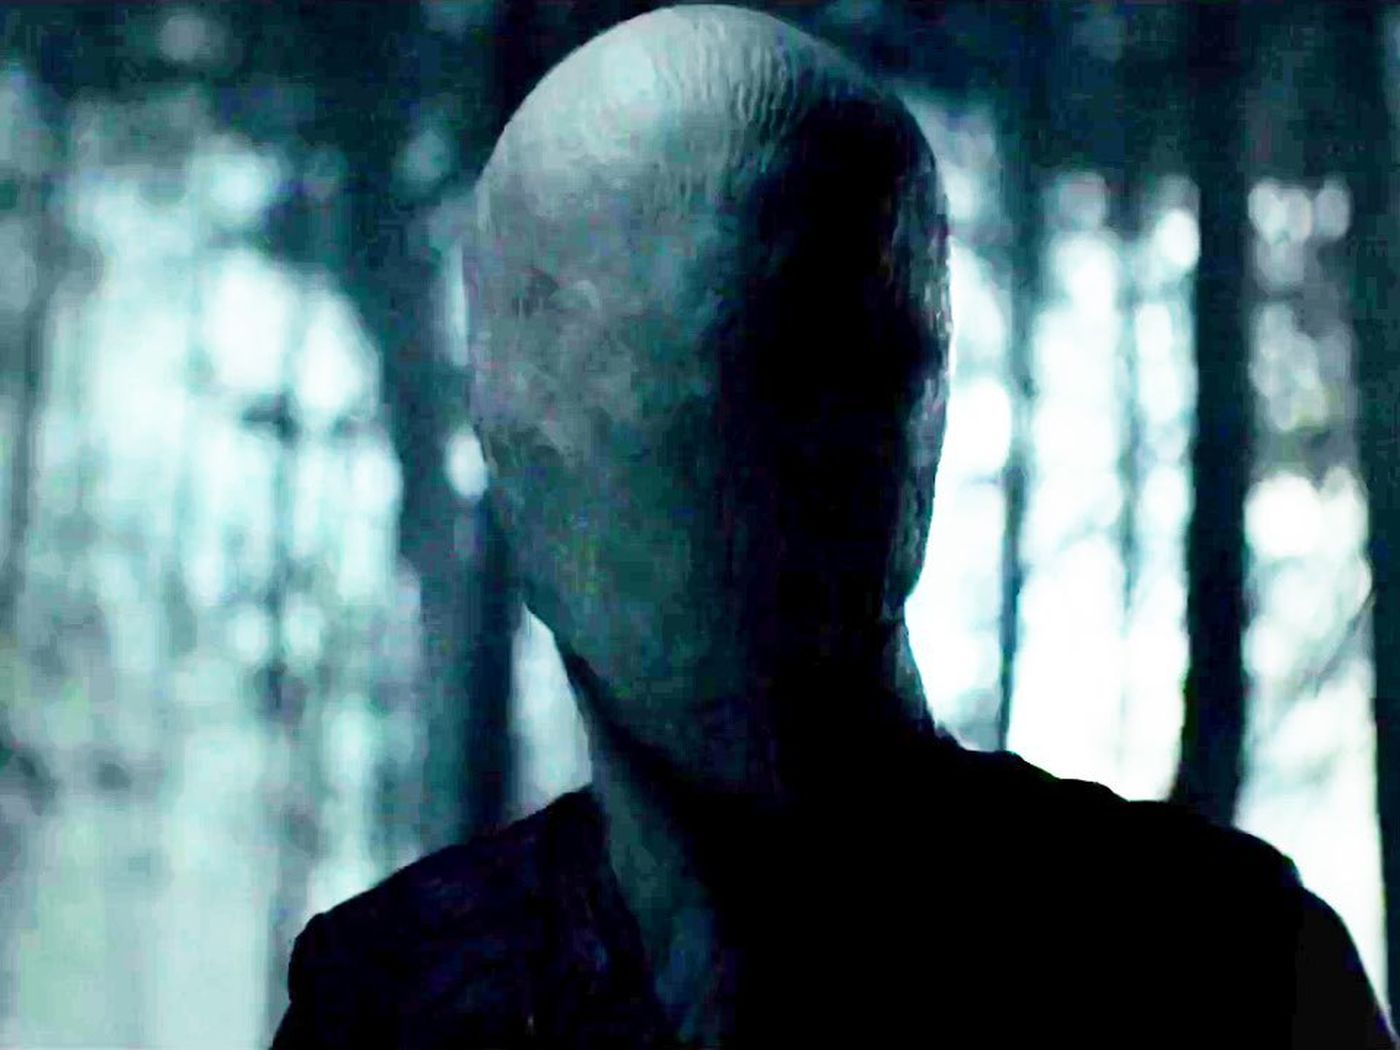 Slender Man's ending ignores internet myth and real-life